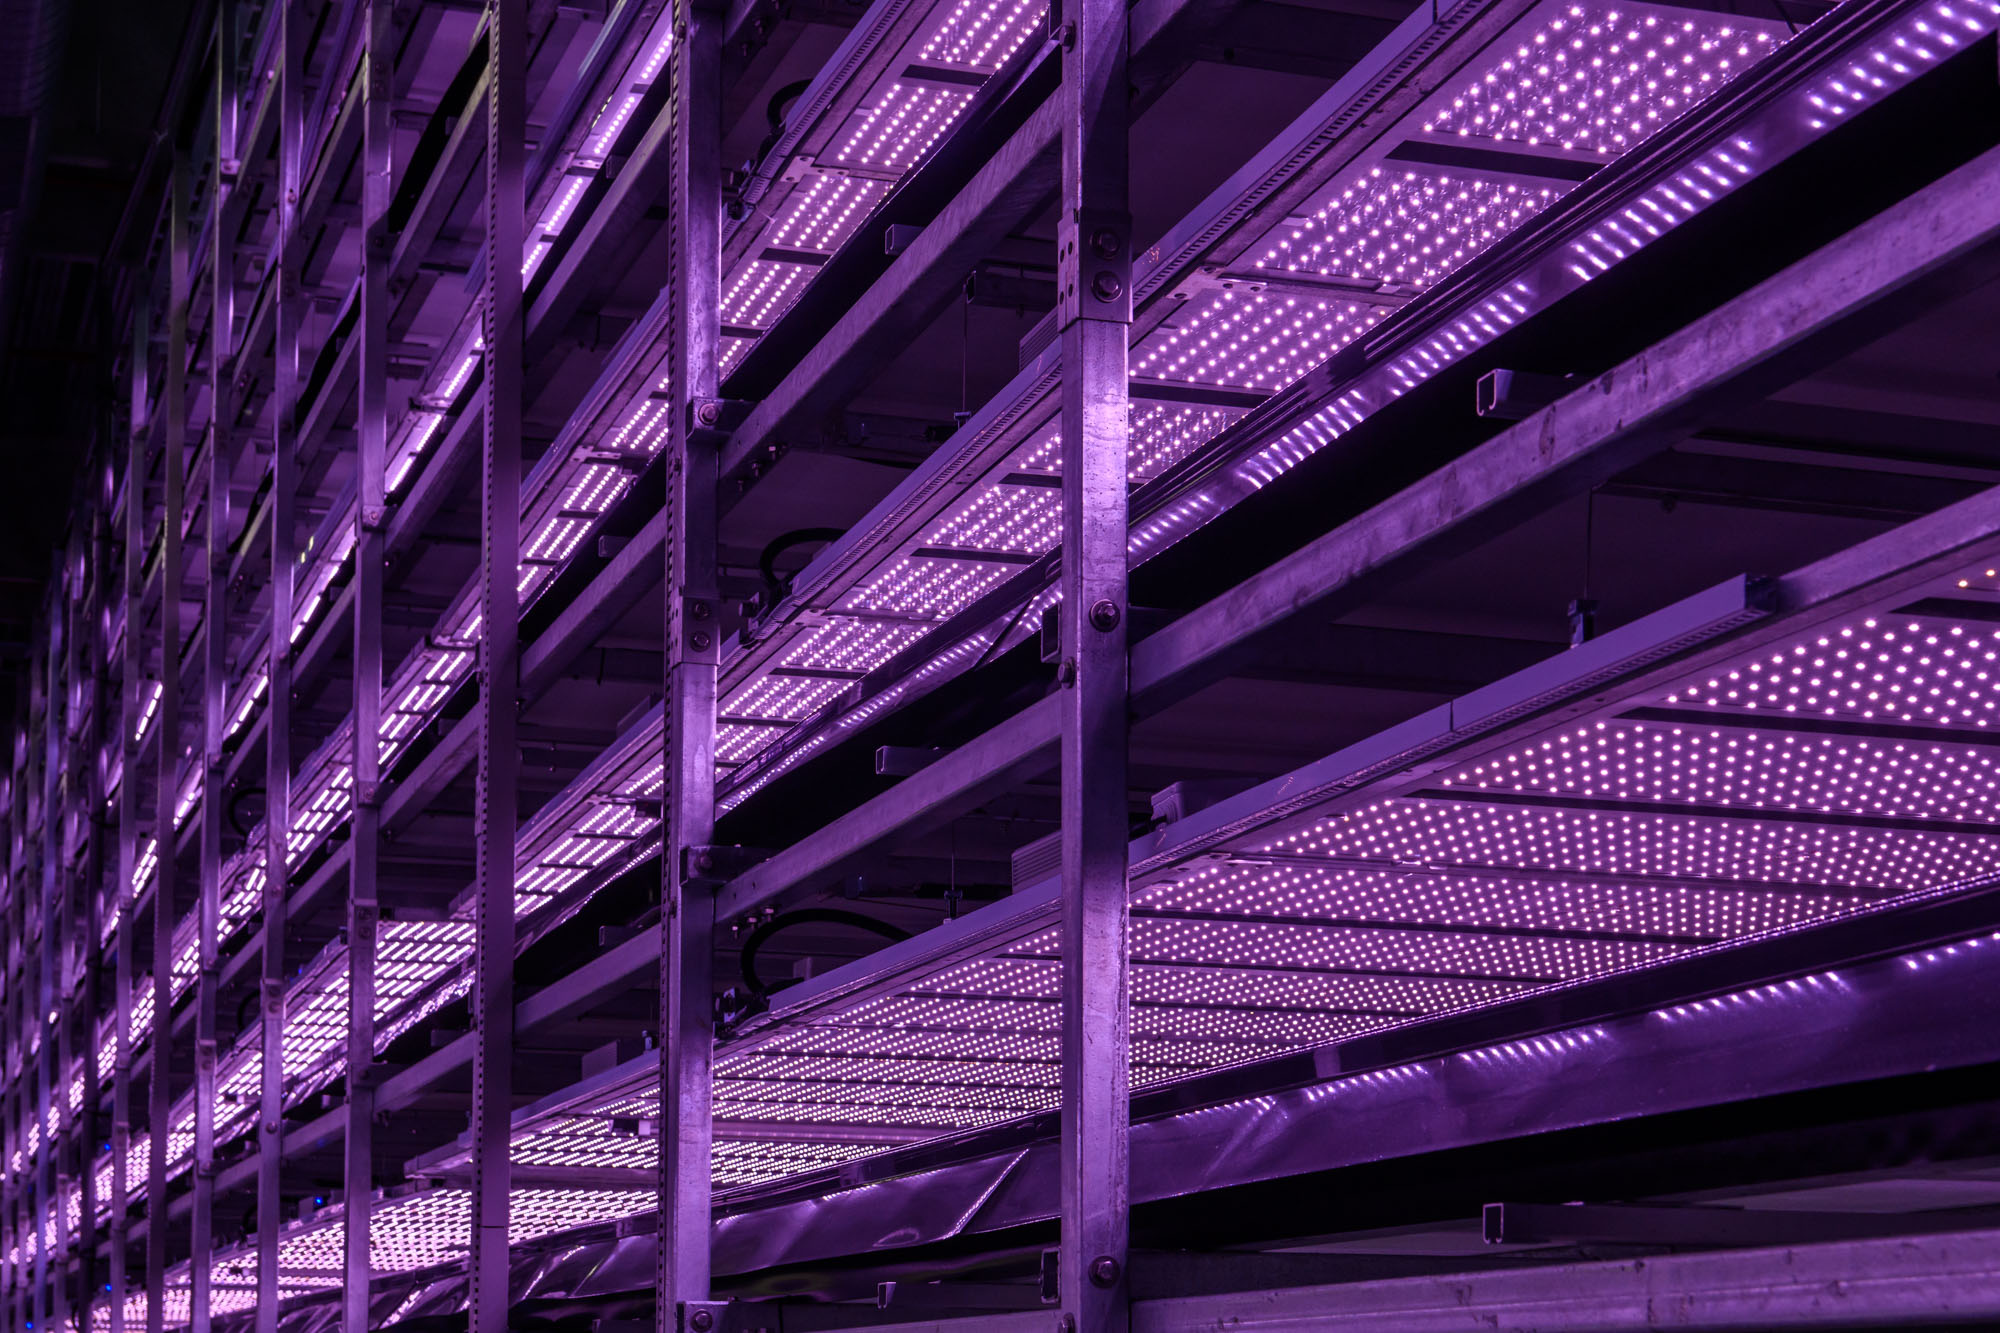 YesHealth Group vertical farming technology